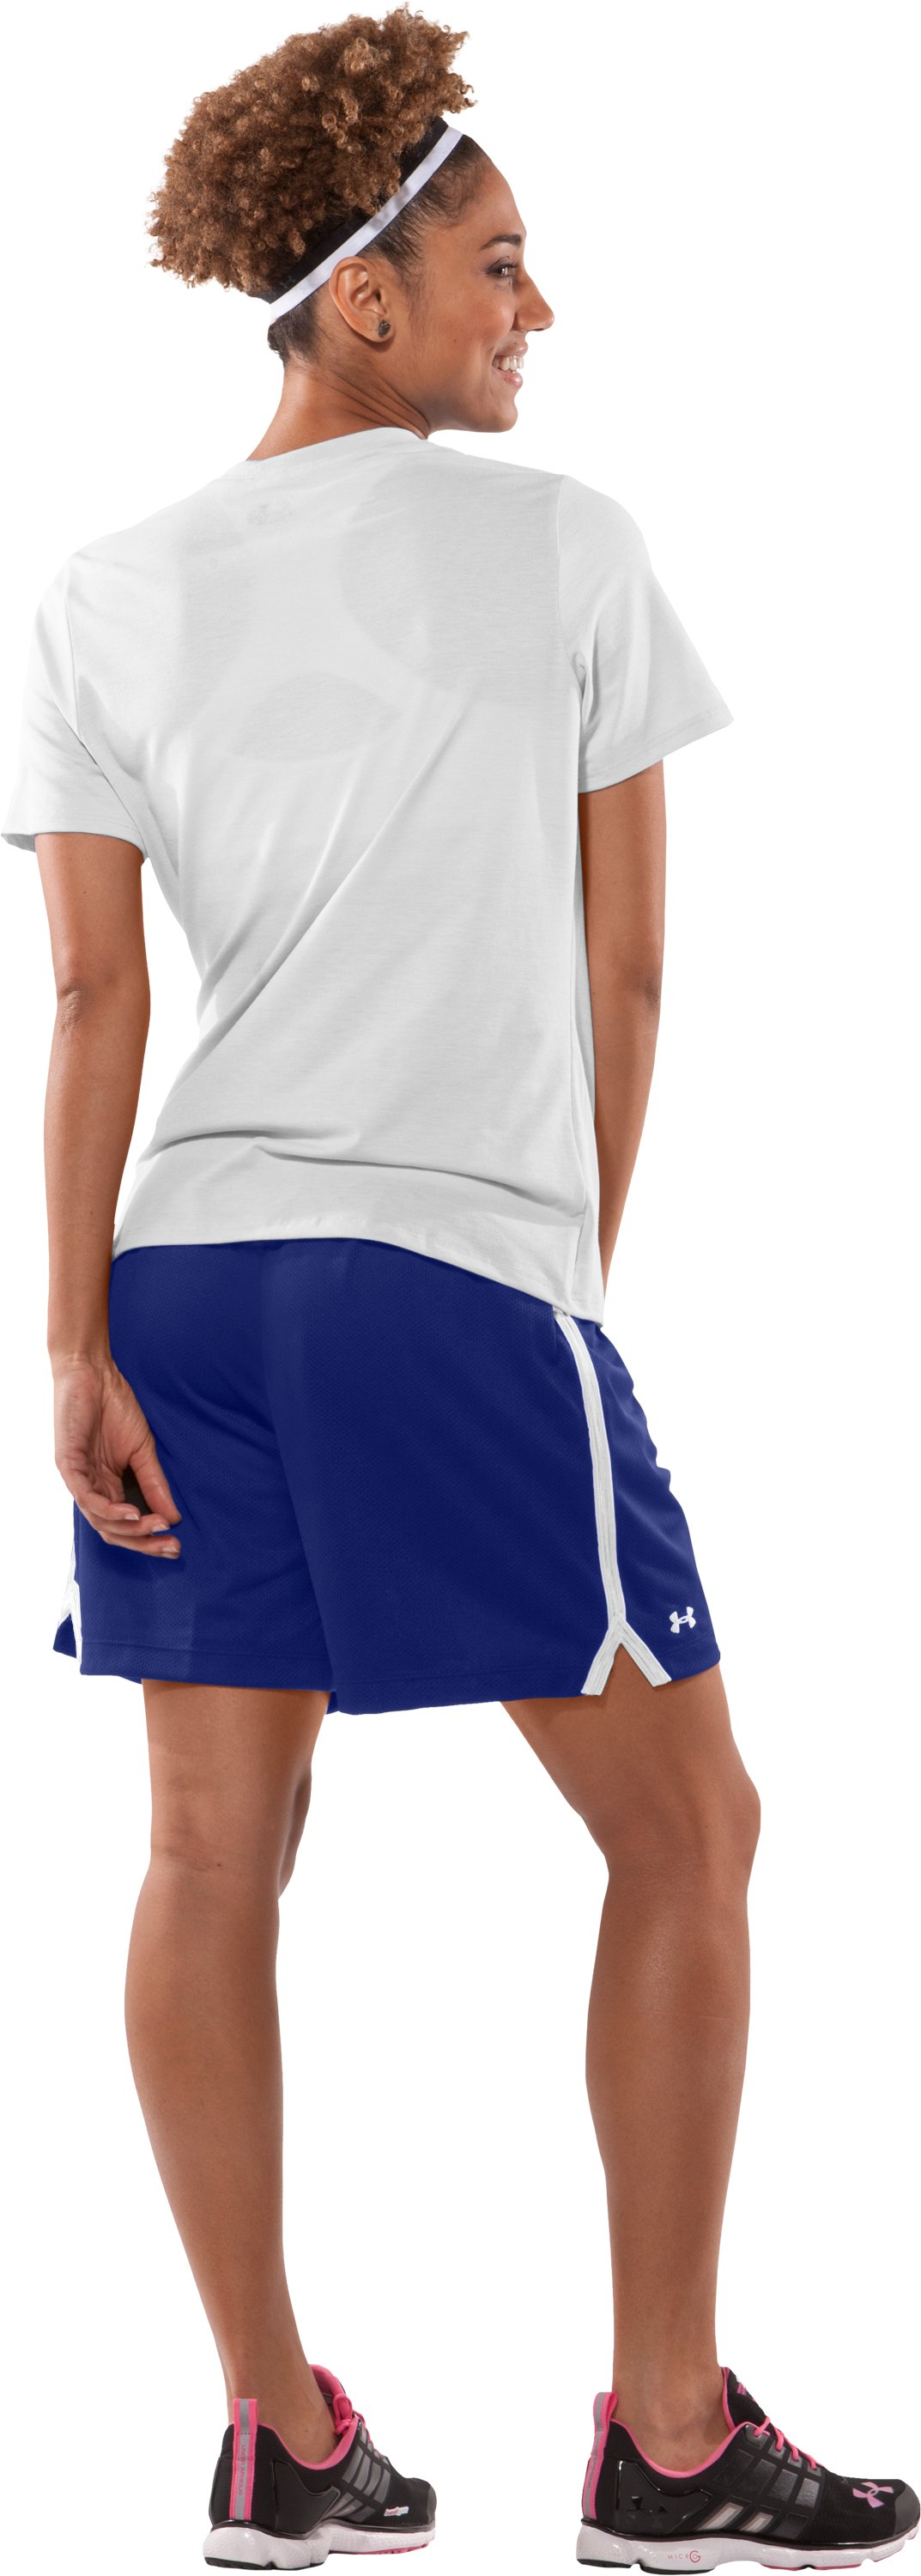 "Women's Skill 6"" Mesh Shorts, Royal, Back"